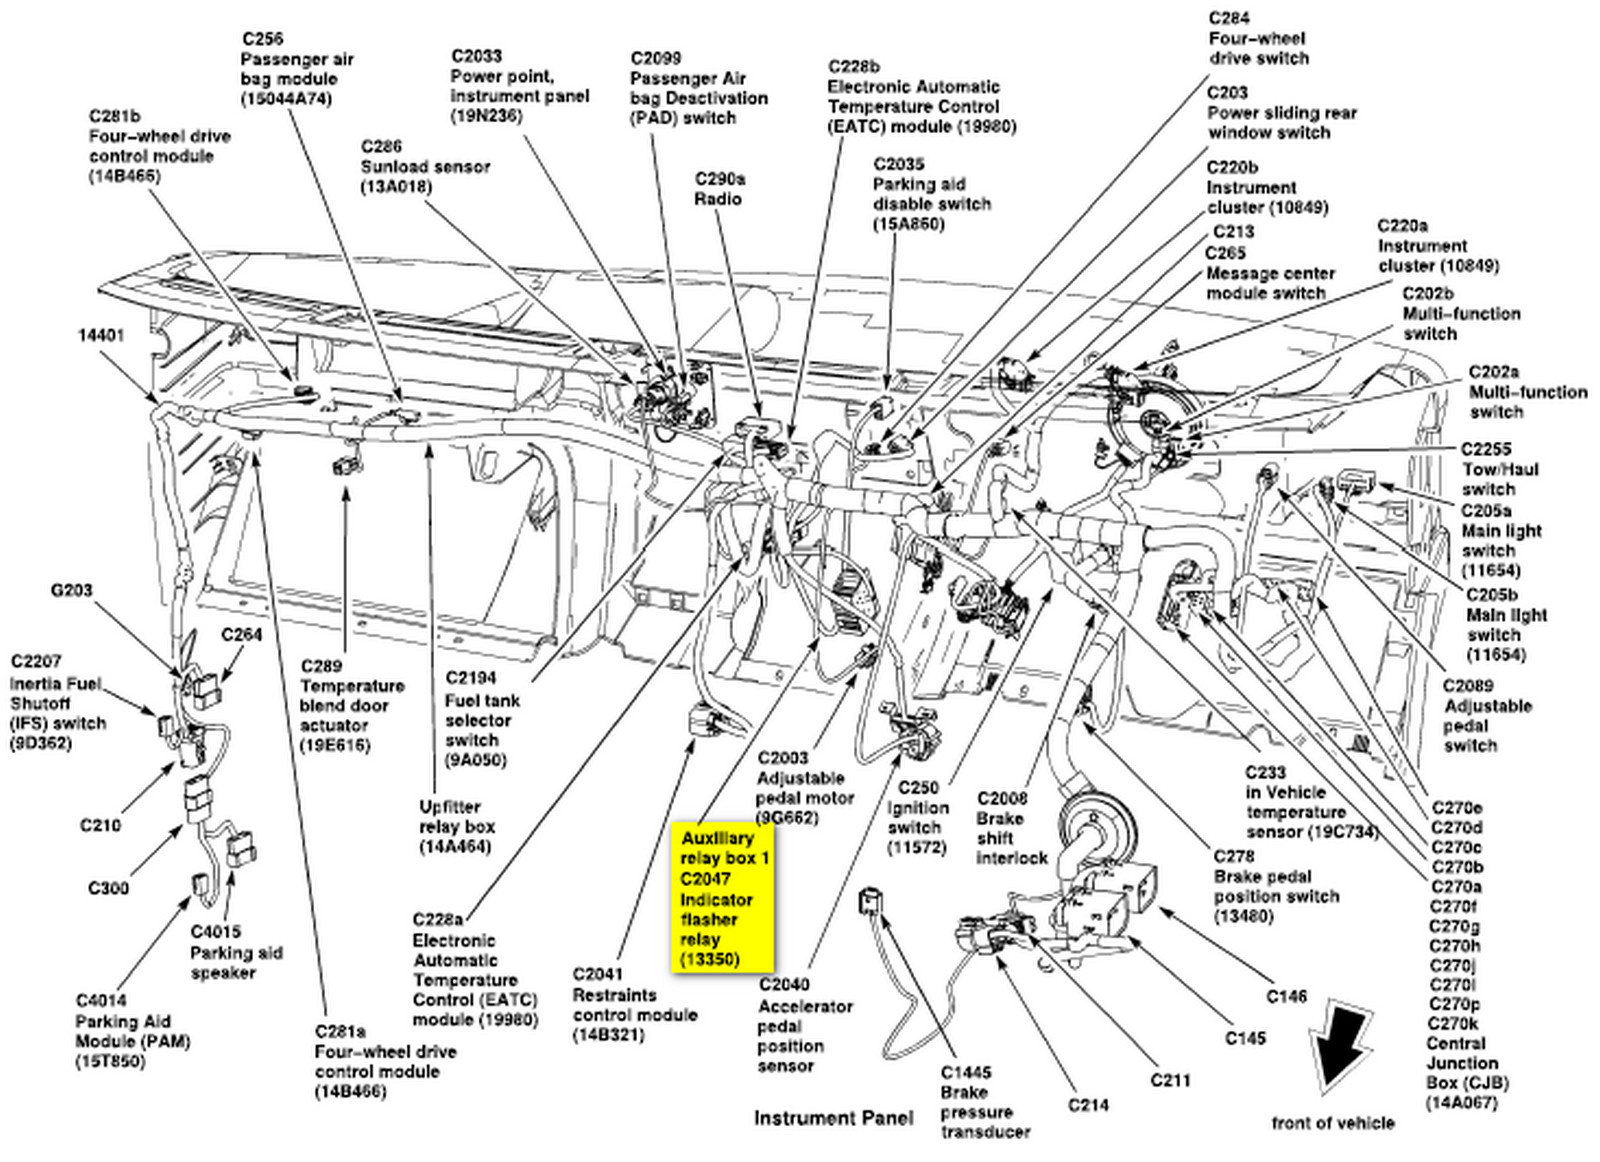 Manual Freestar Auto Electrical Wiring Diagram Yamaha Wr250r Ford E Series Cargo Questions